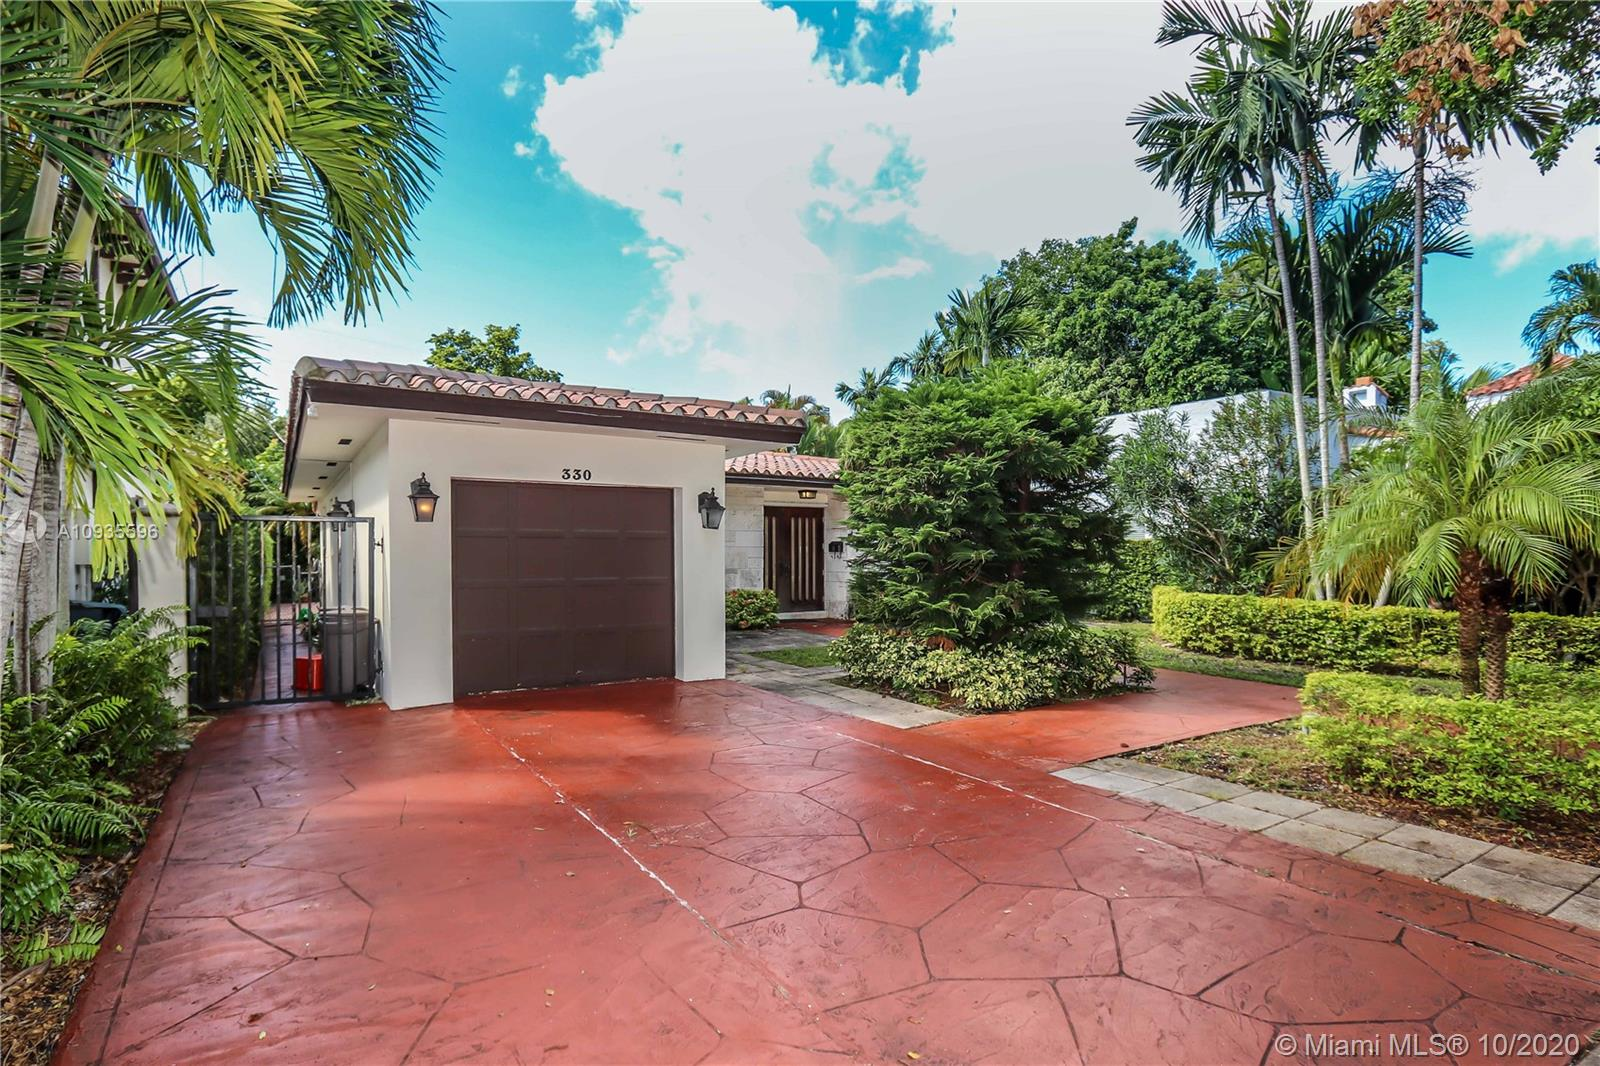 Details for 330 Camilo Ave, Coral Gables, FL 33134